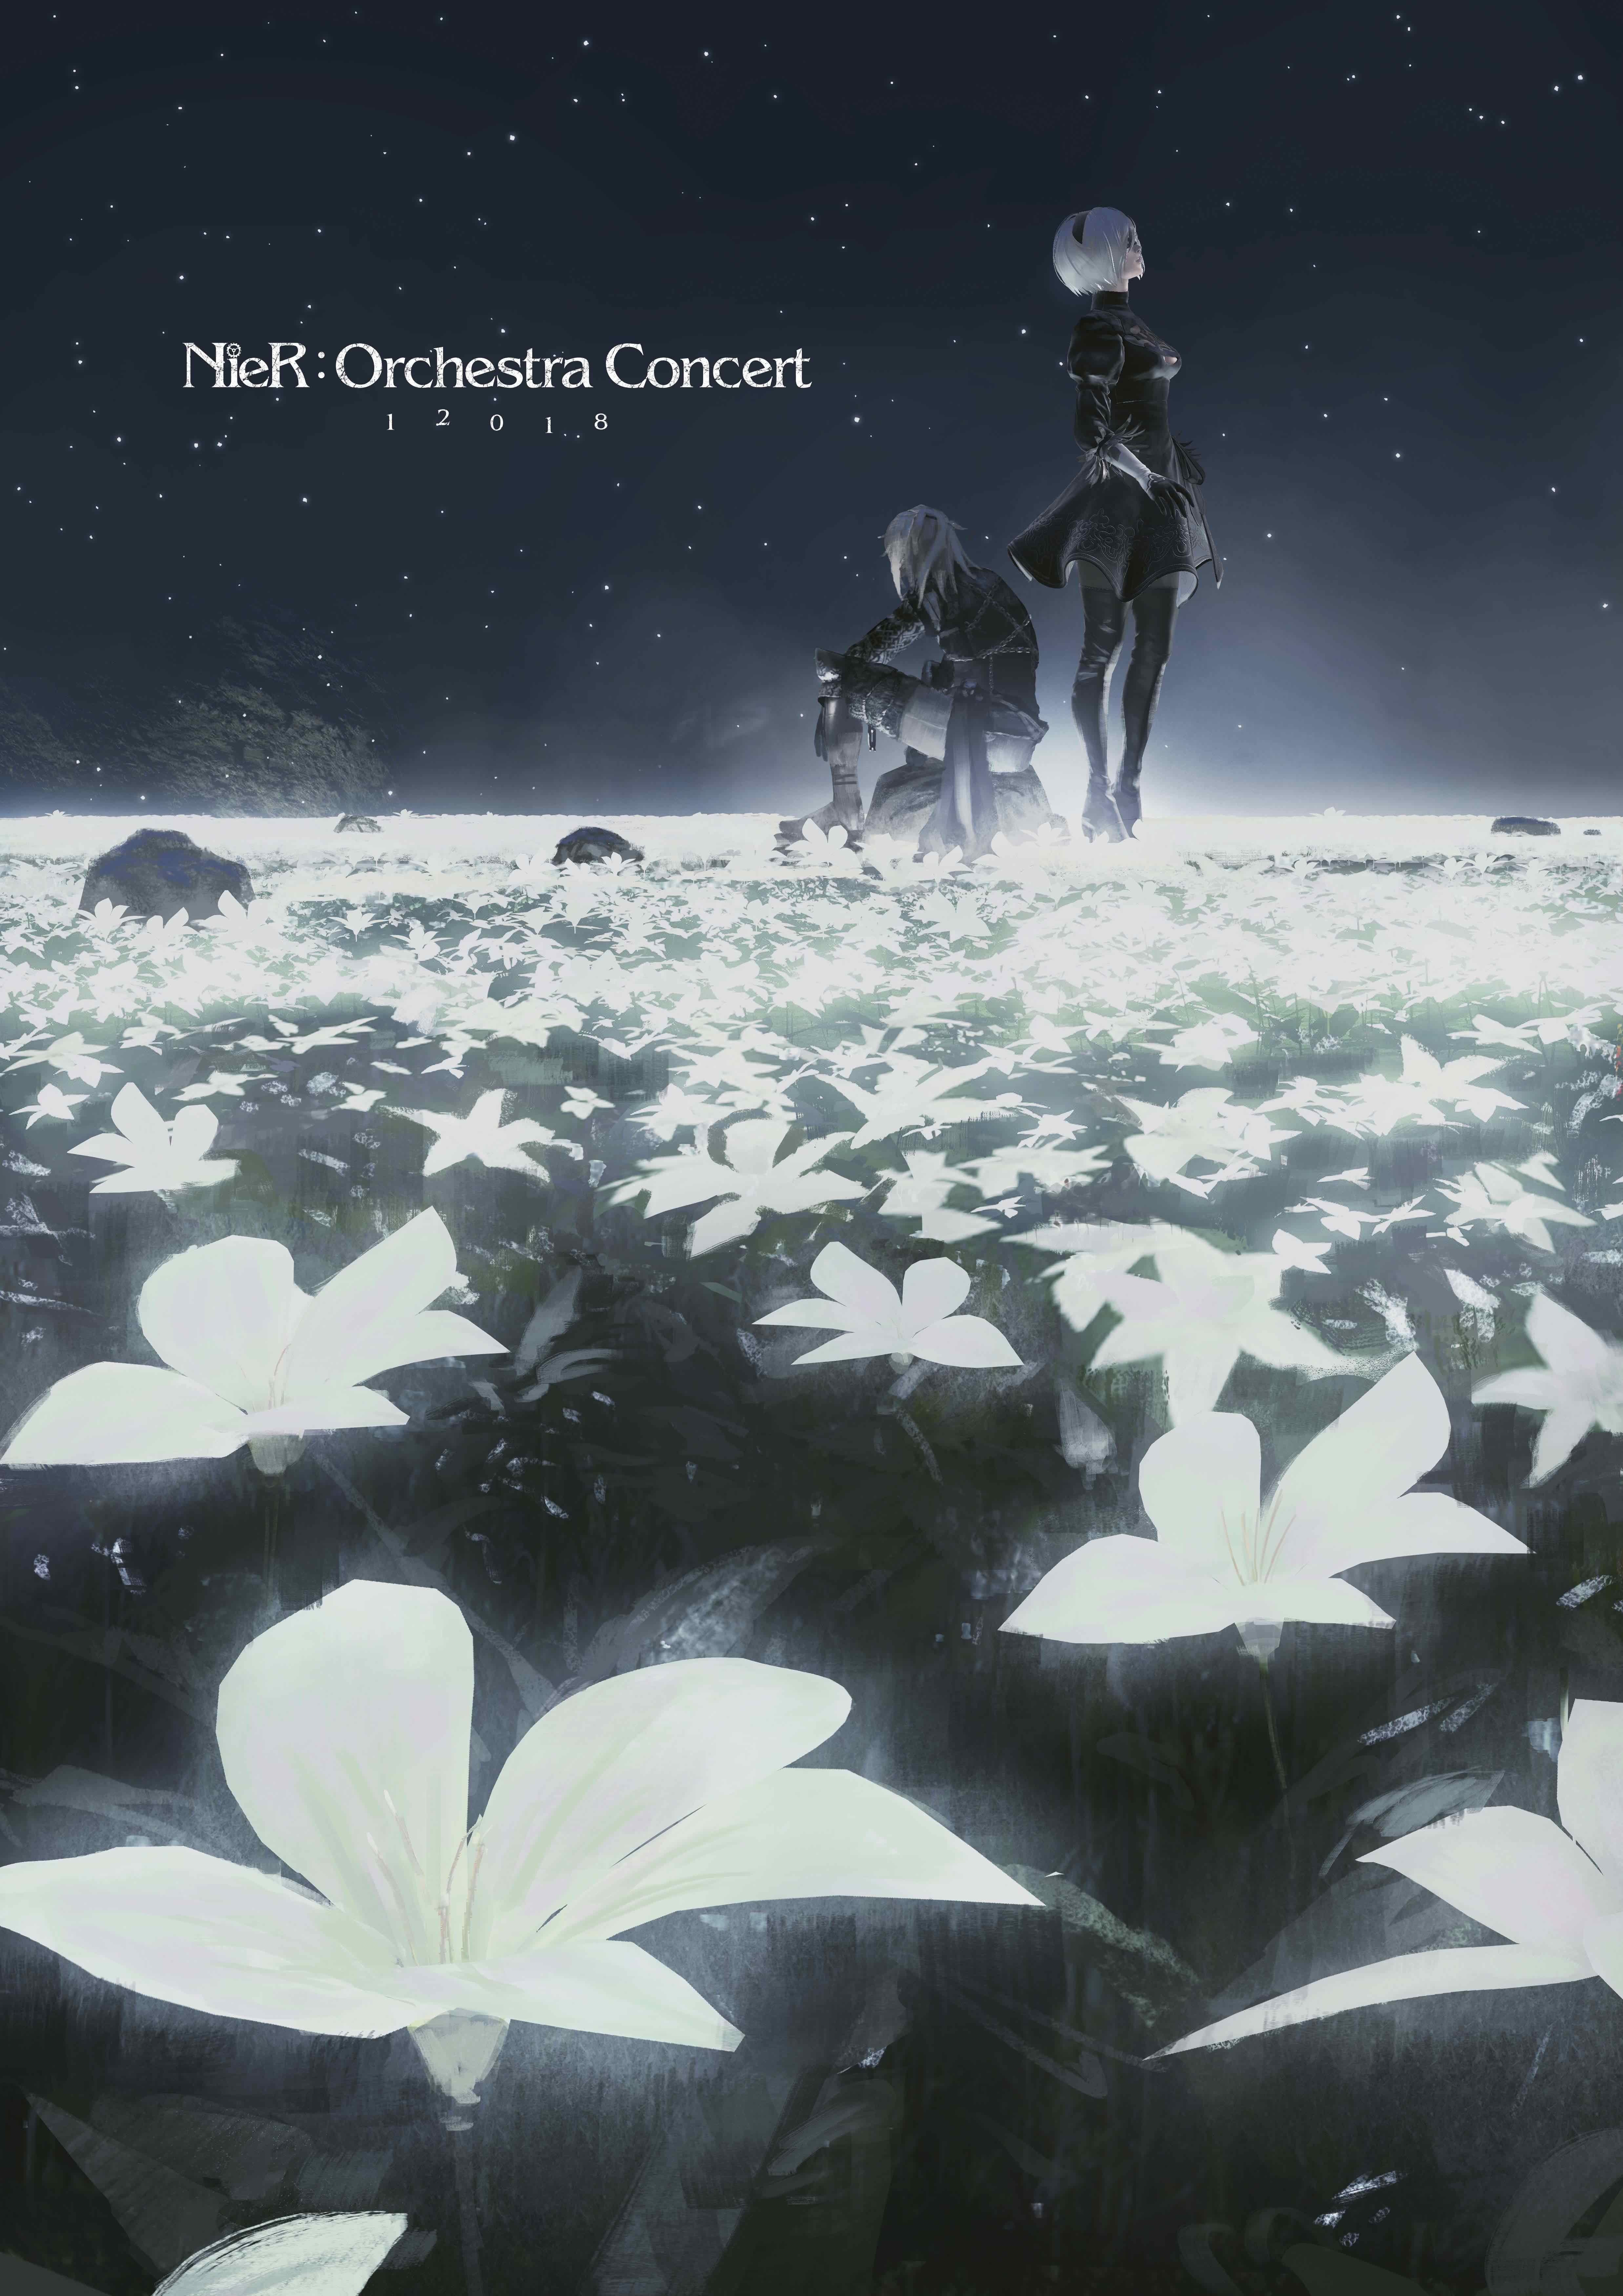 NieR Orchestra Concert 12018